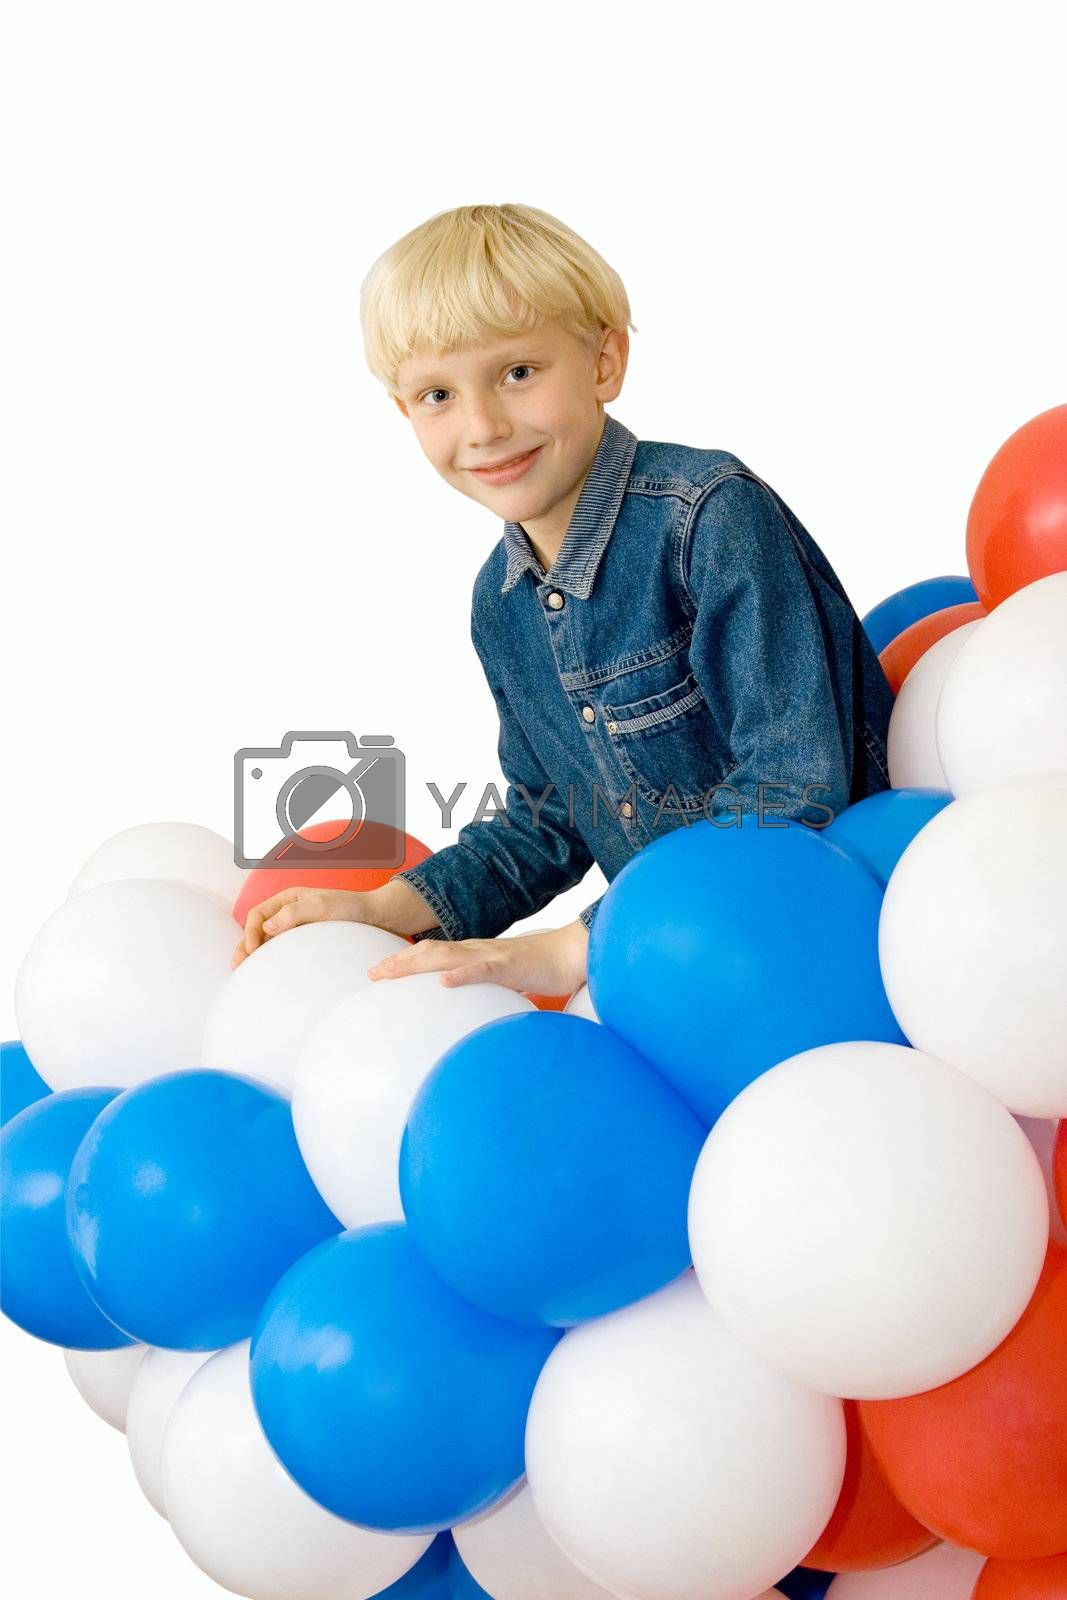 a smiling boy with balloons on white background